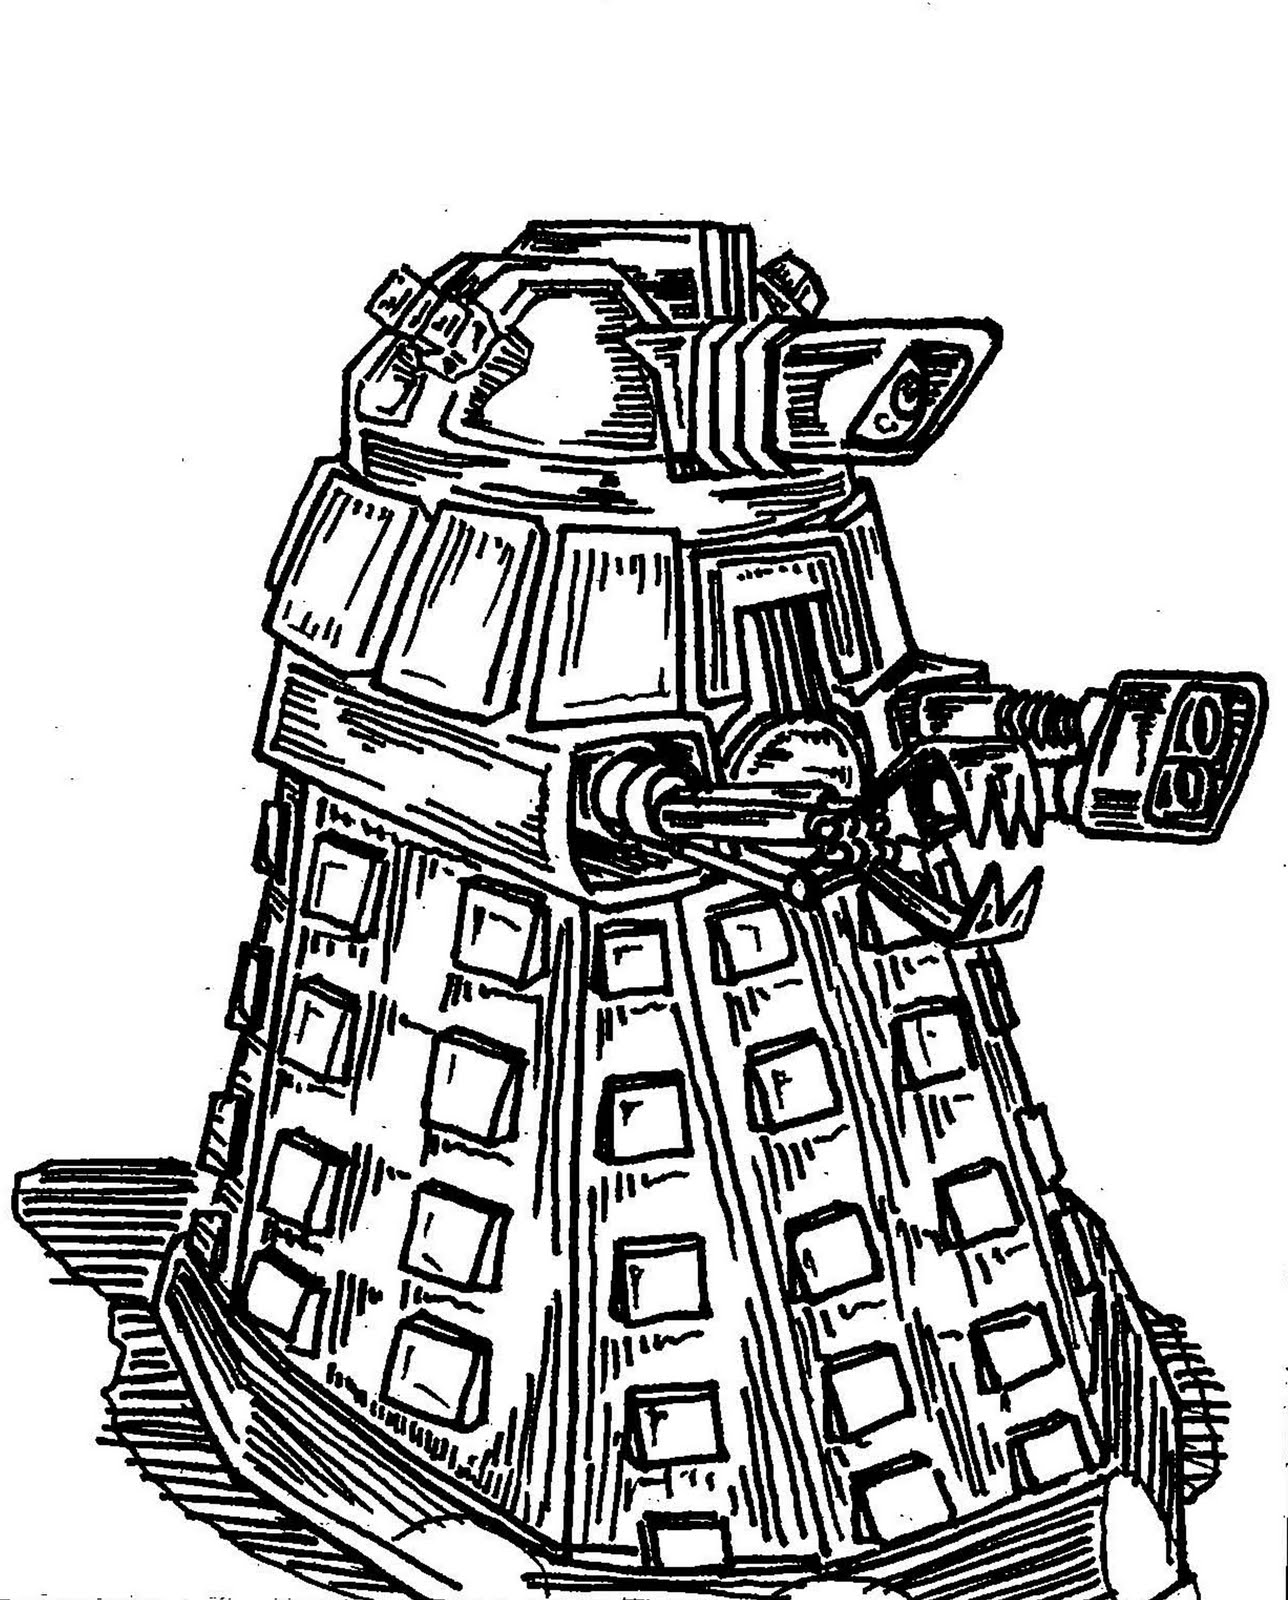 dalek coloring page - dalek free colouring pages